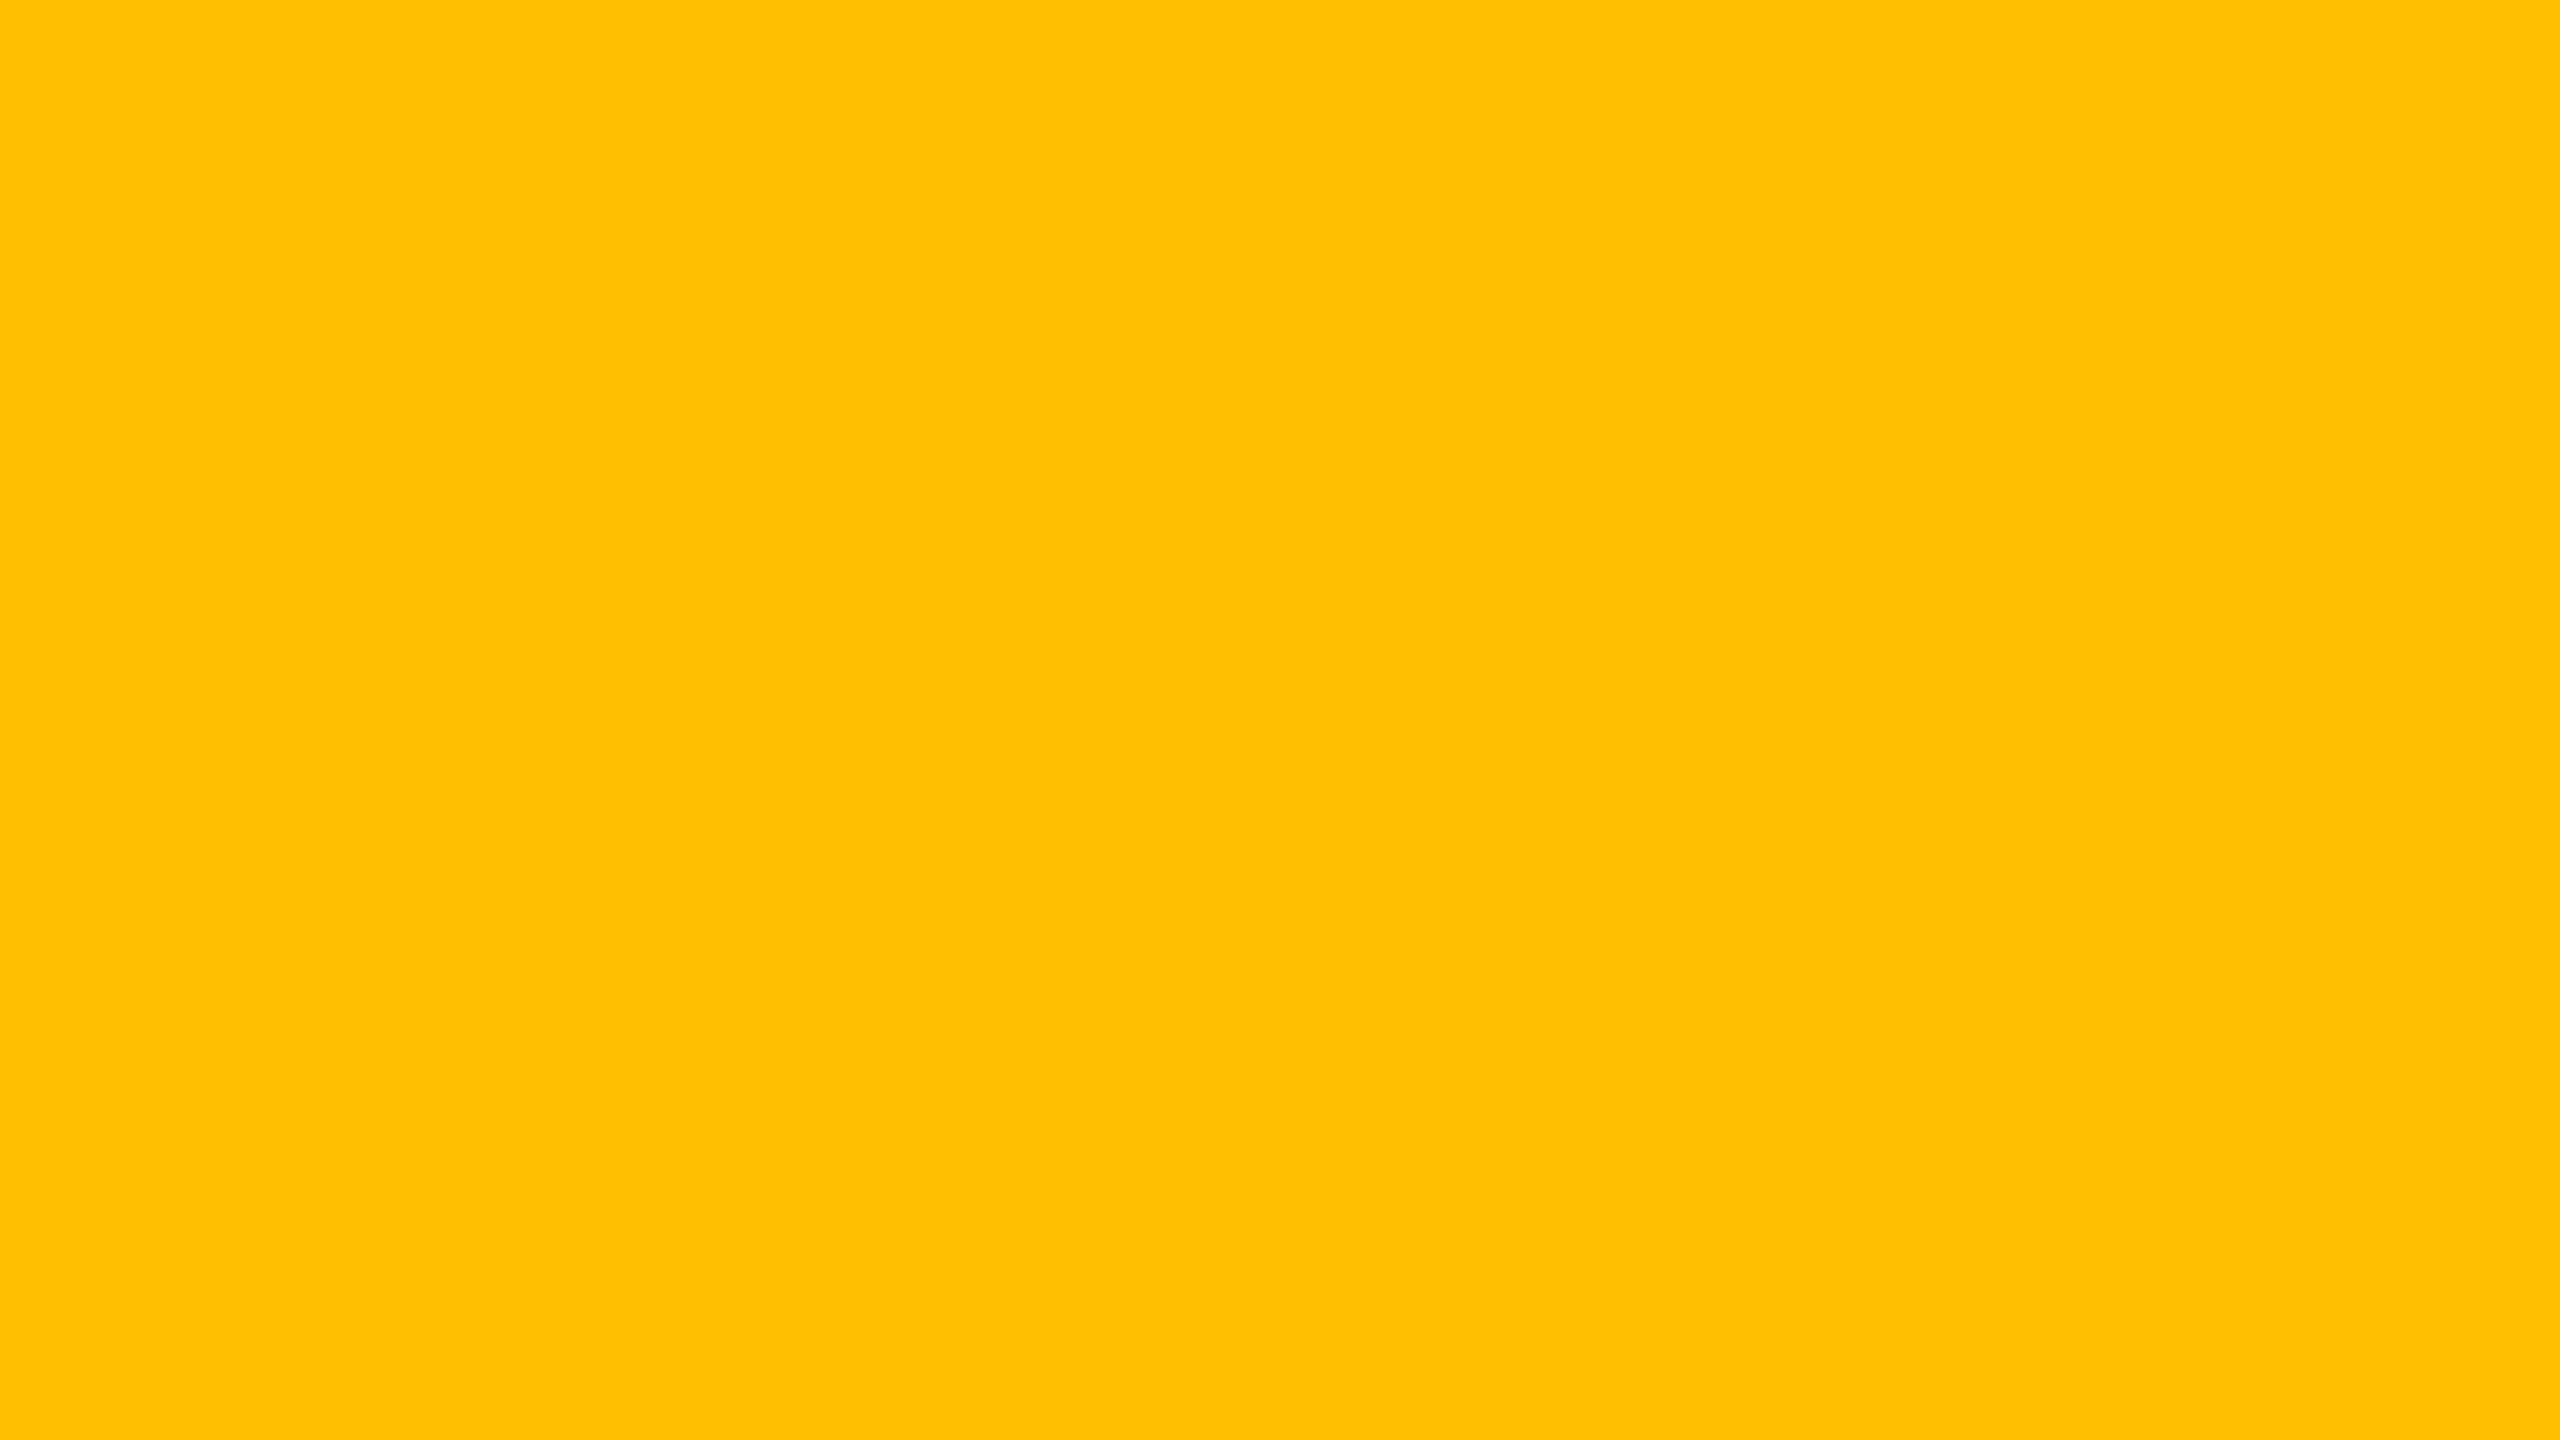 2560x1440 Amber Solid Color Background